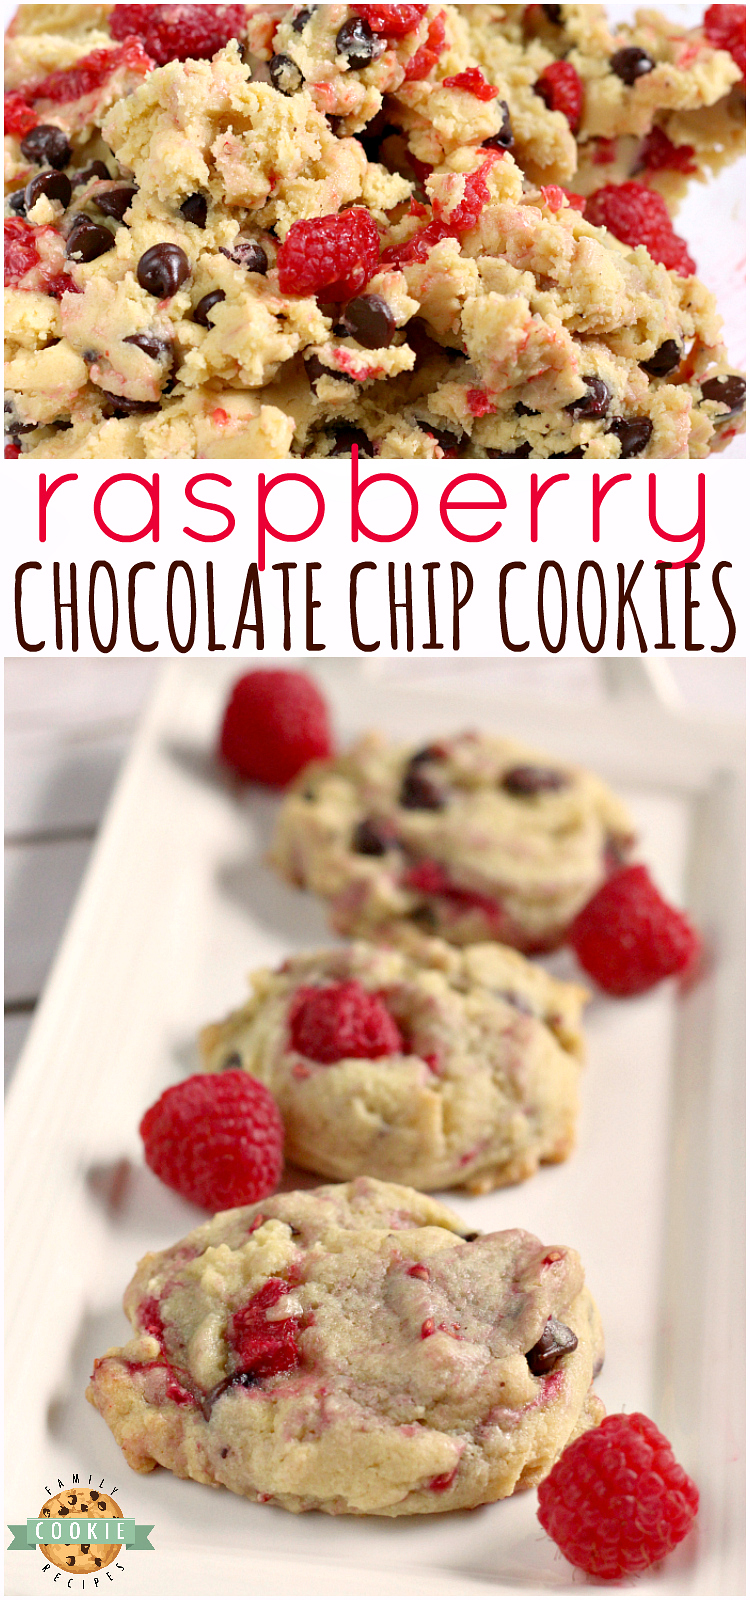 Raspberry Chocolate Chip Cookies are soft, chewy and absolutely amazing! Adding fresh raspberries to a delicious classic cookie recipe makes such a delicious difference!